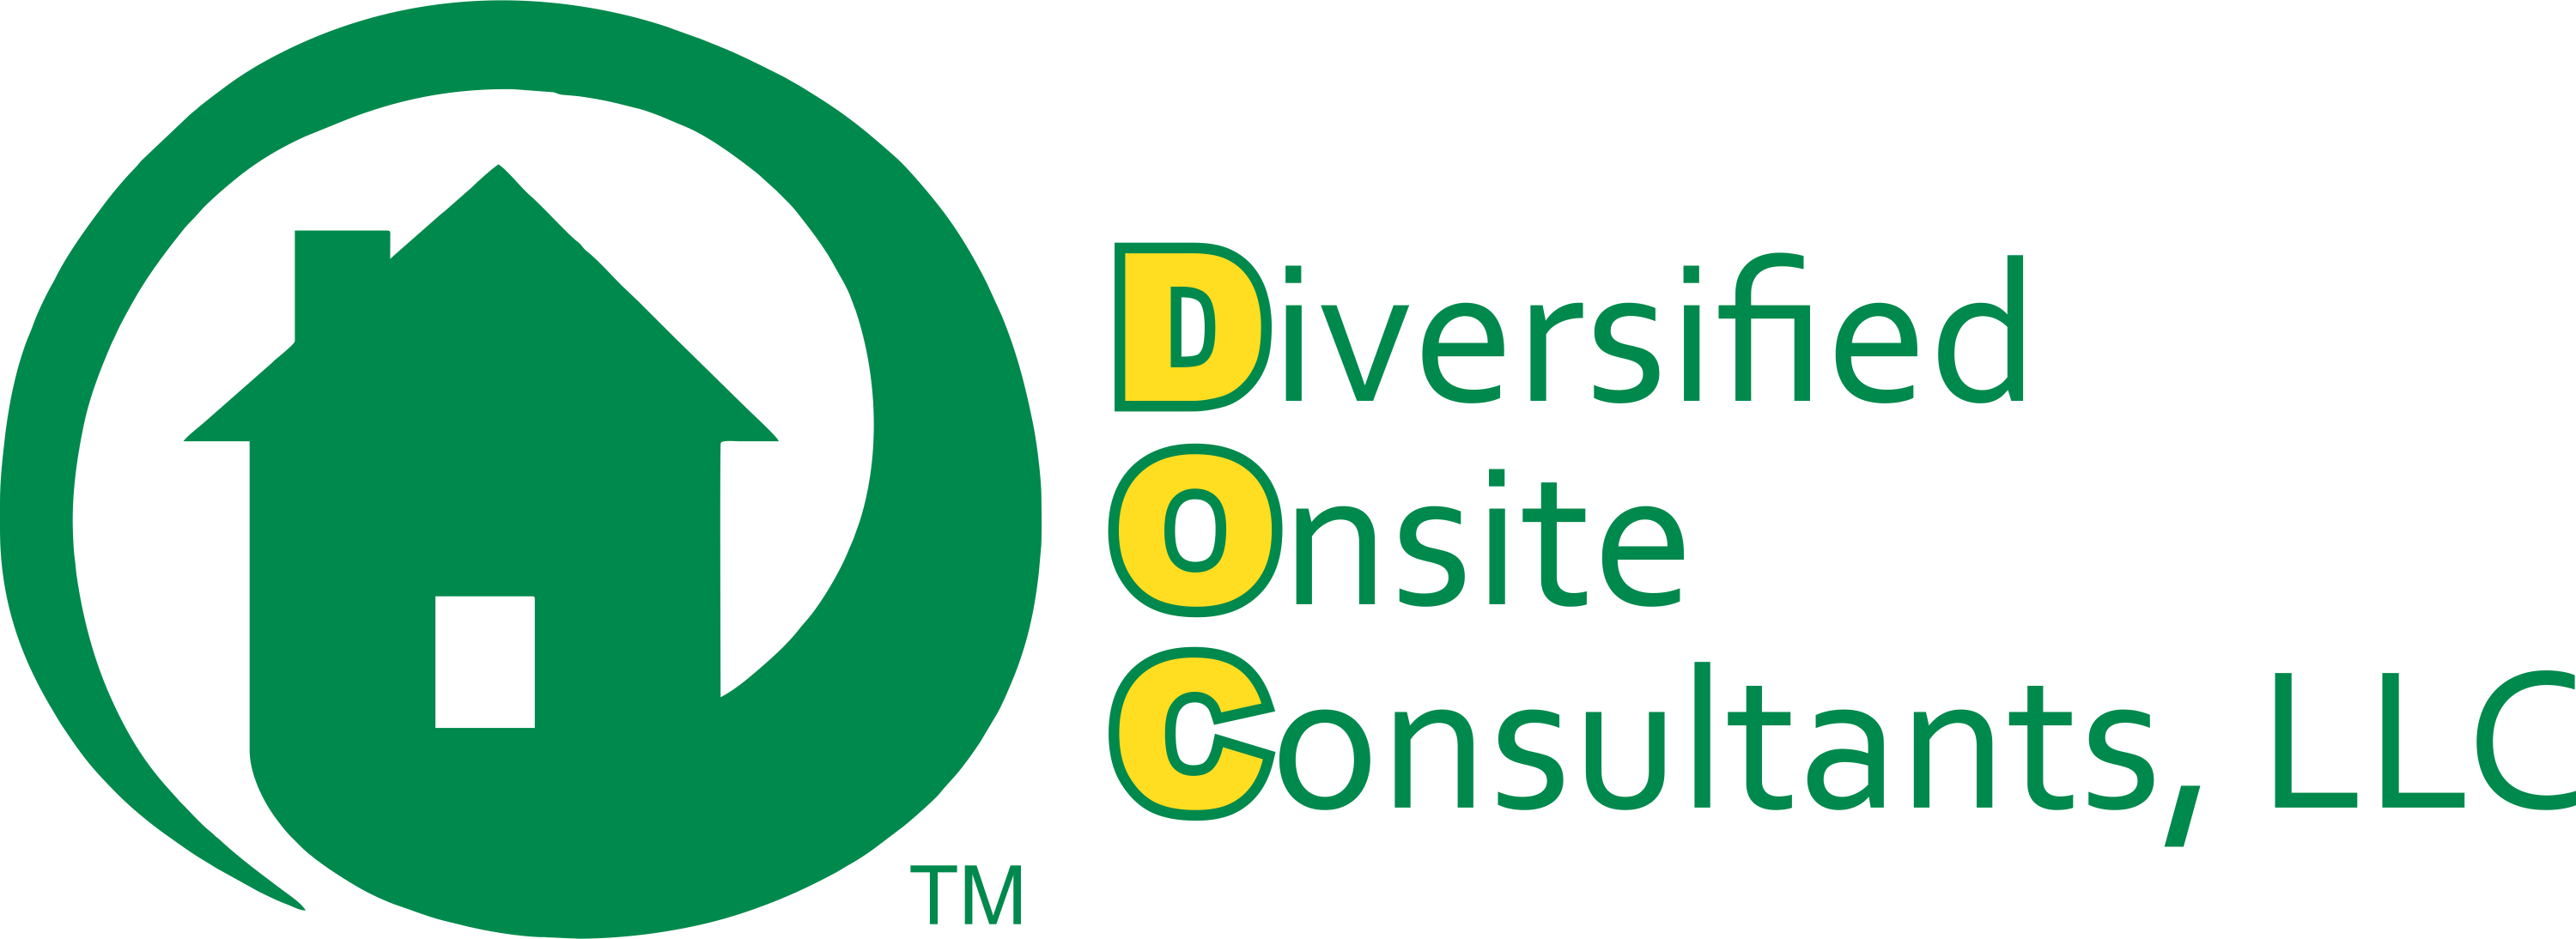 Diversified Onsite Consultants, LLC